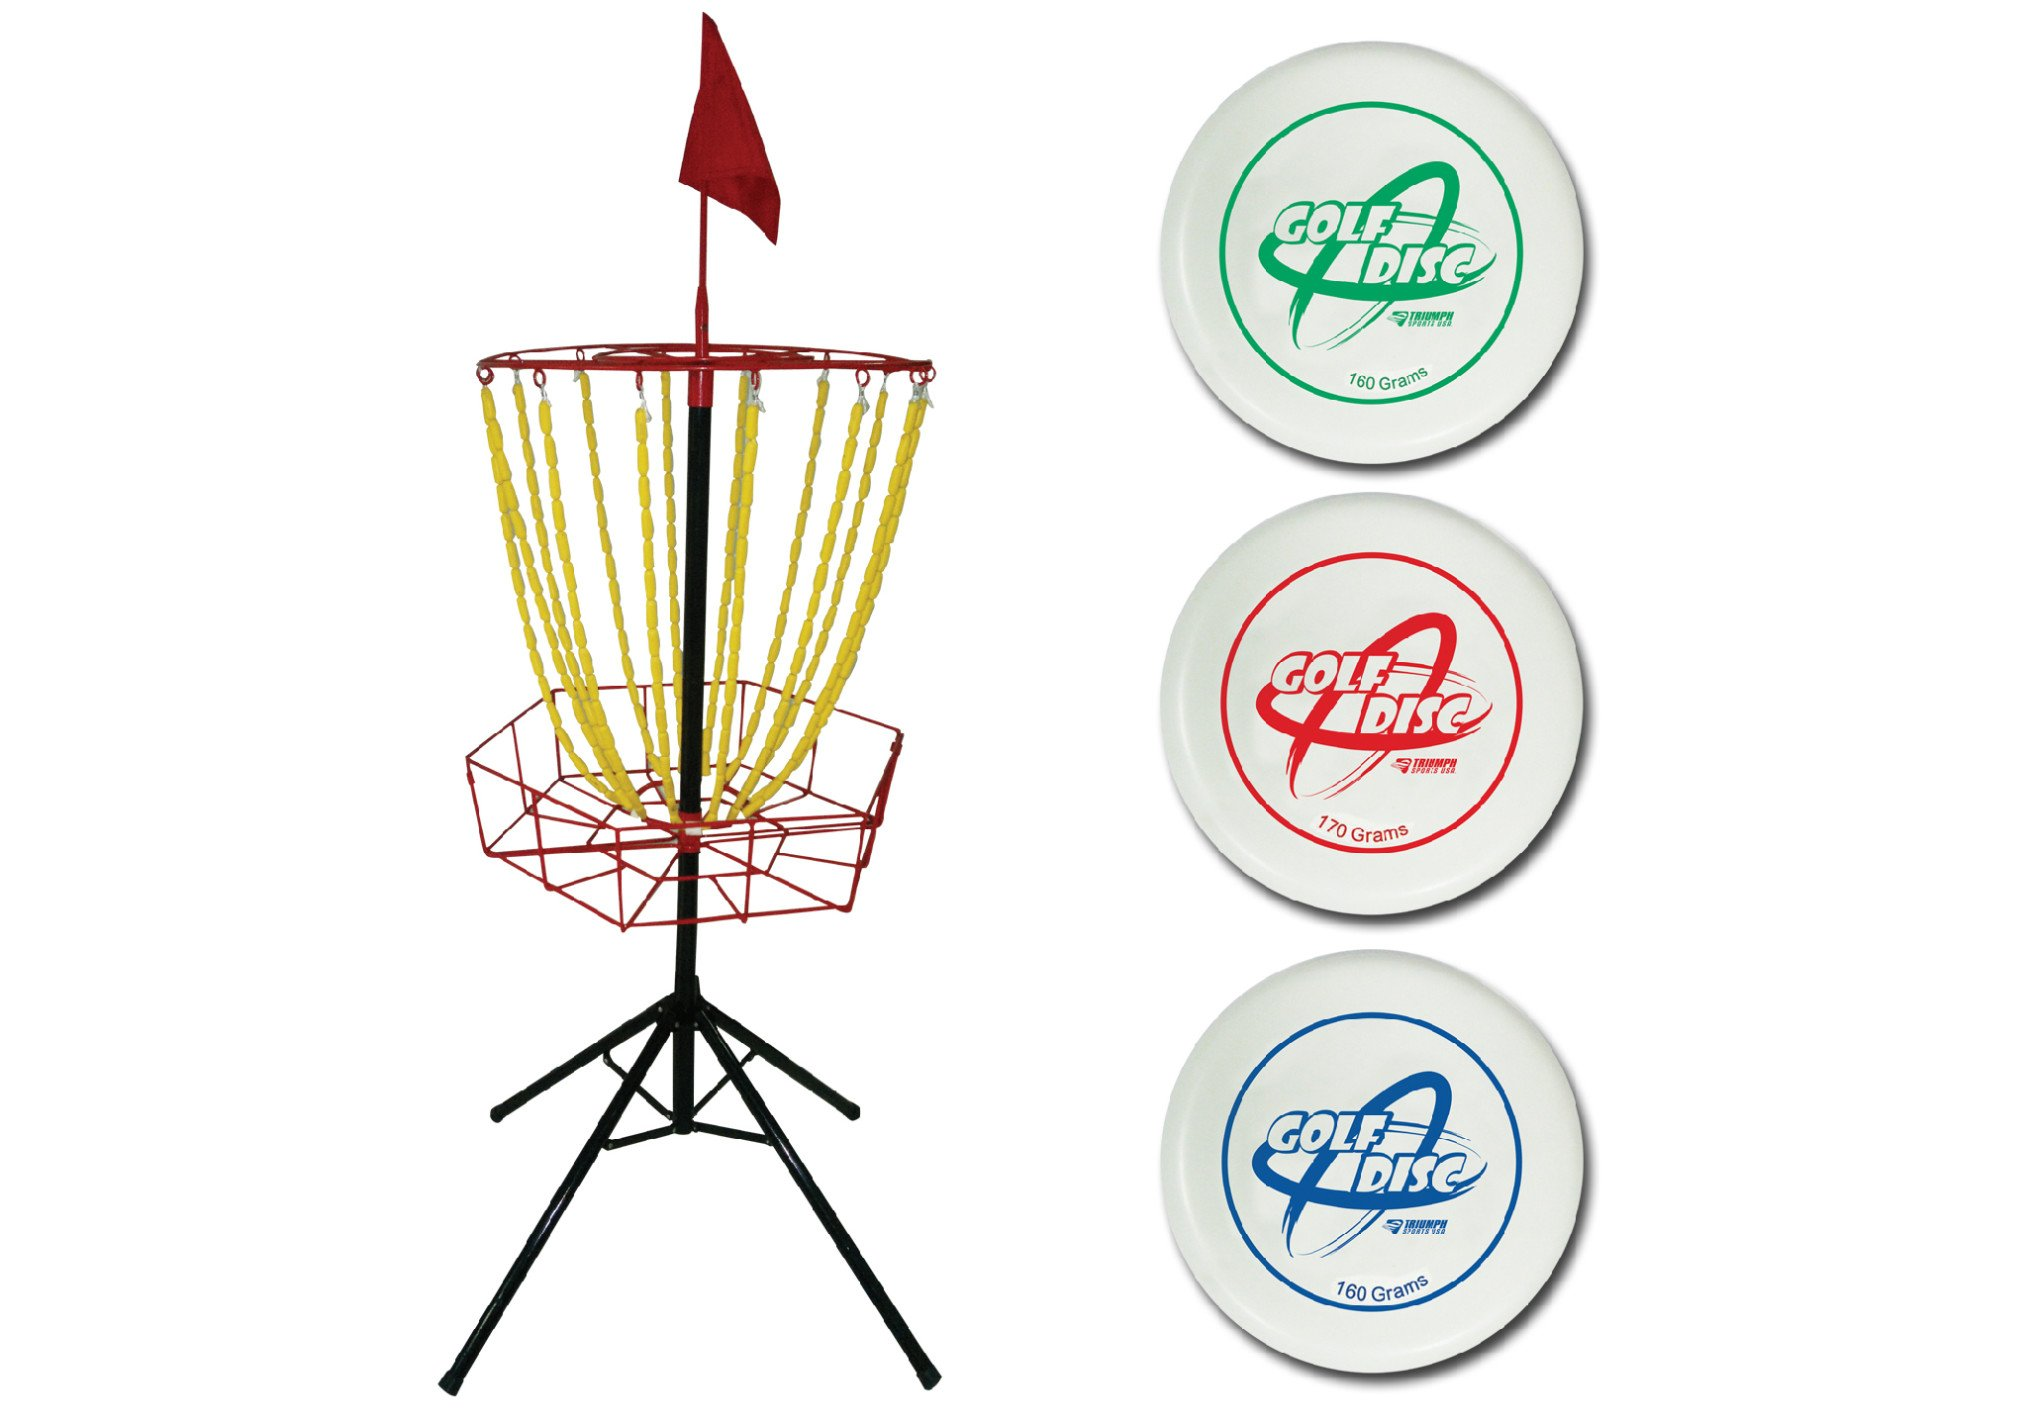 Triumph Disc Golf Toss Steel Portable Target and Three Weighted Golf Discs (160g, 170g, 180g) by Triumph Sports